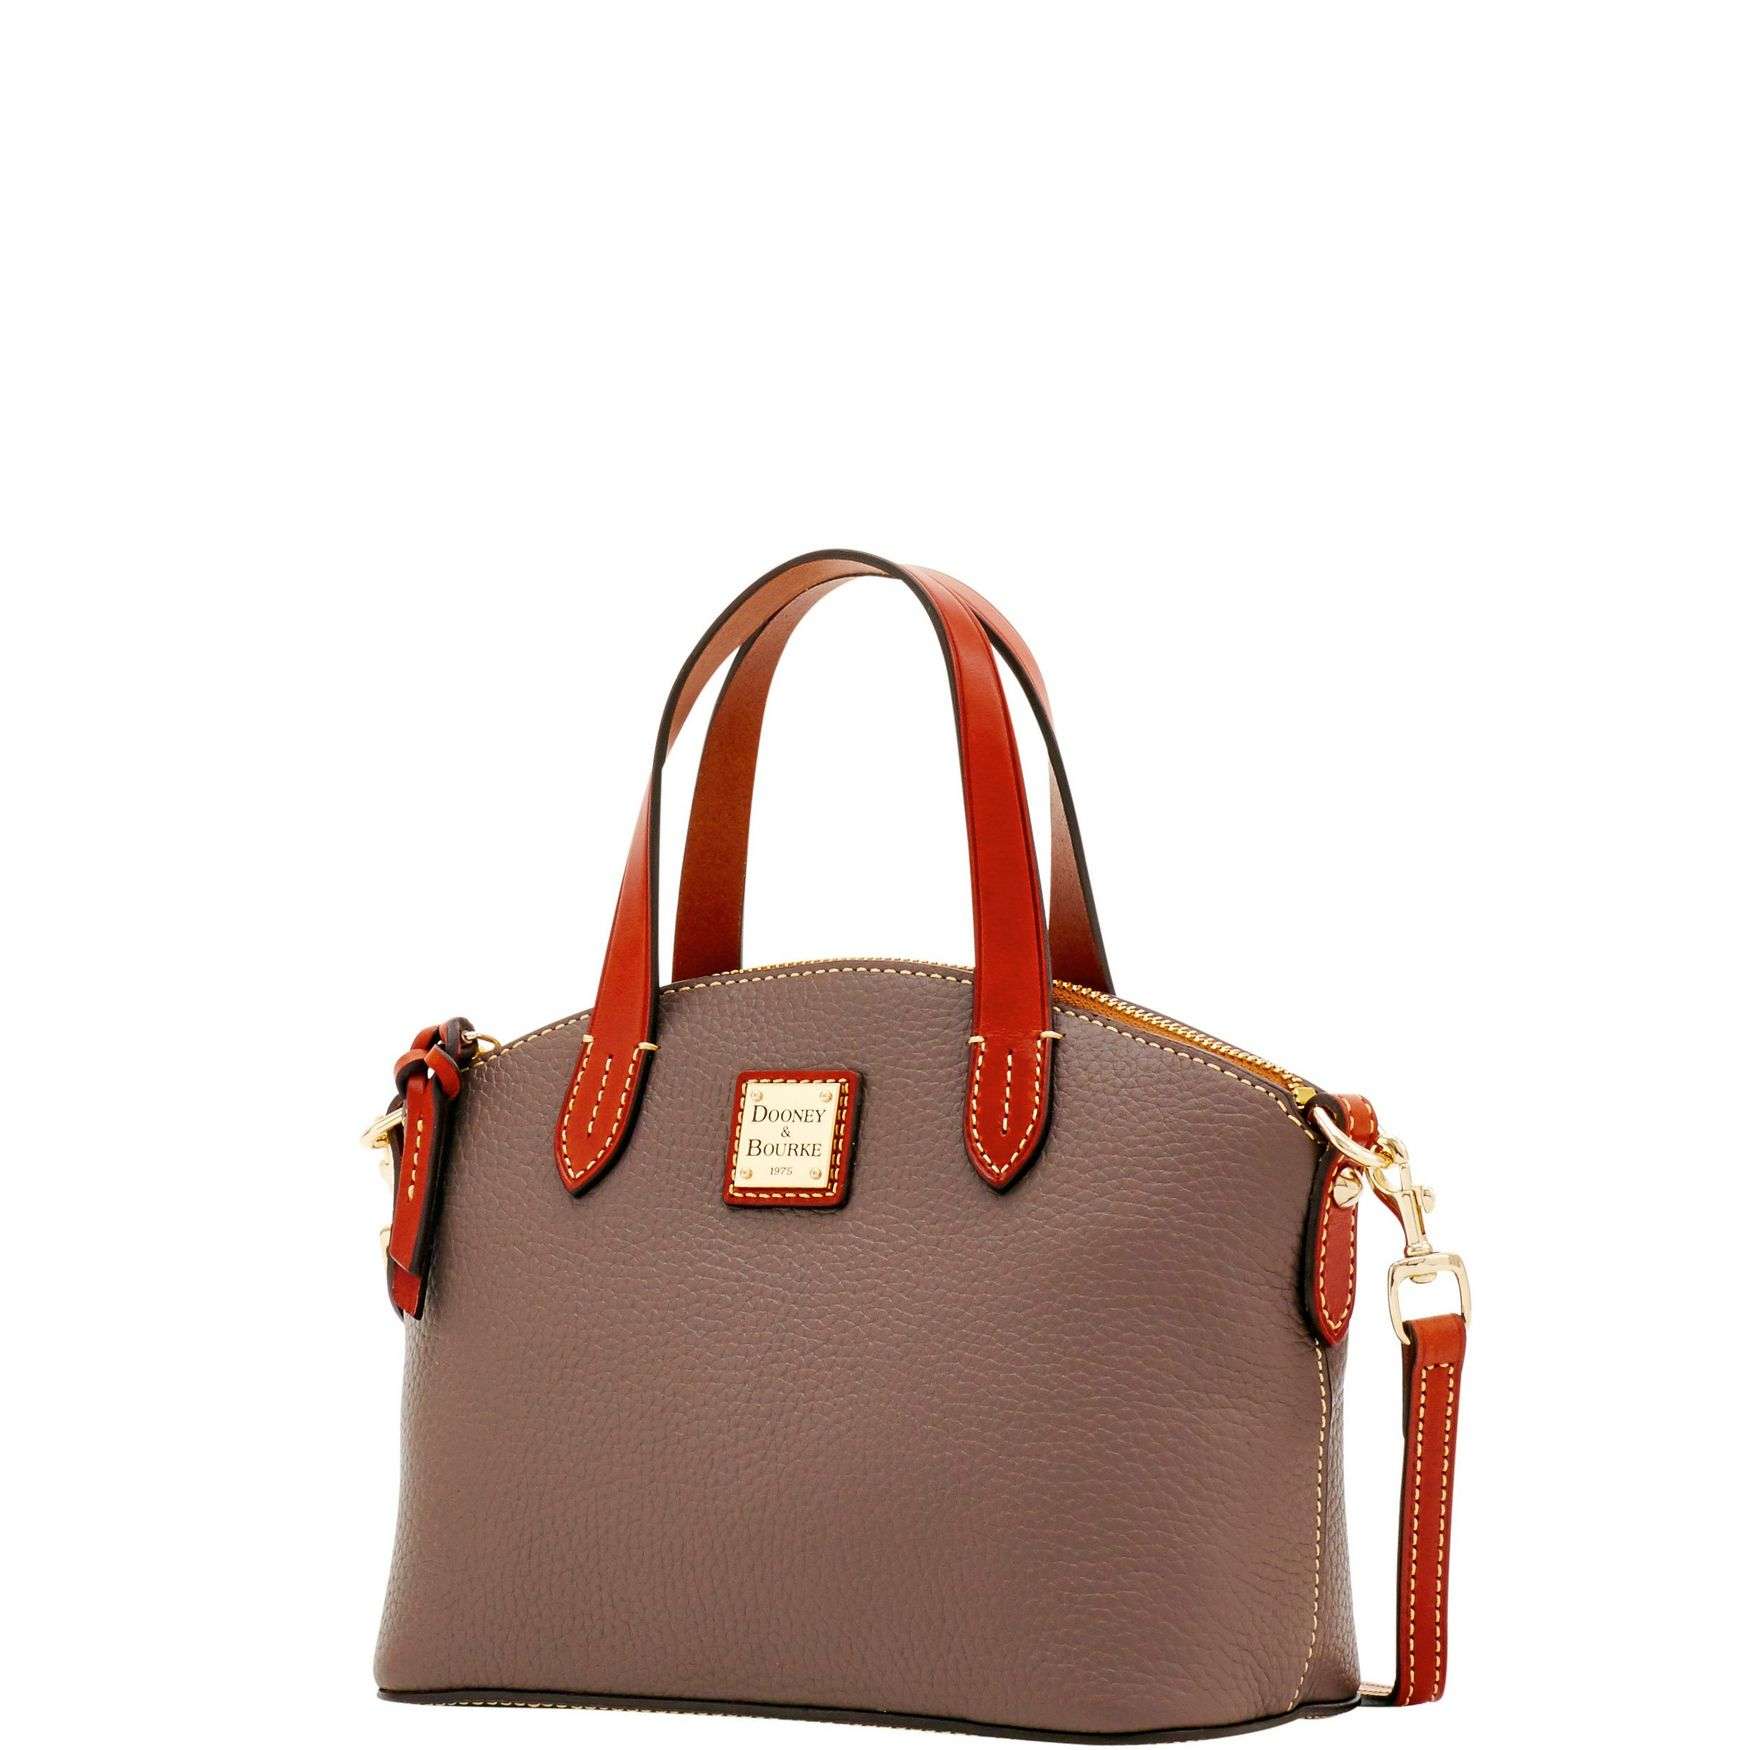 Dooney-amp-Bourke-Pebble-Grain-Ruby-Top-Handle-Bag thumbnail 33